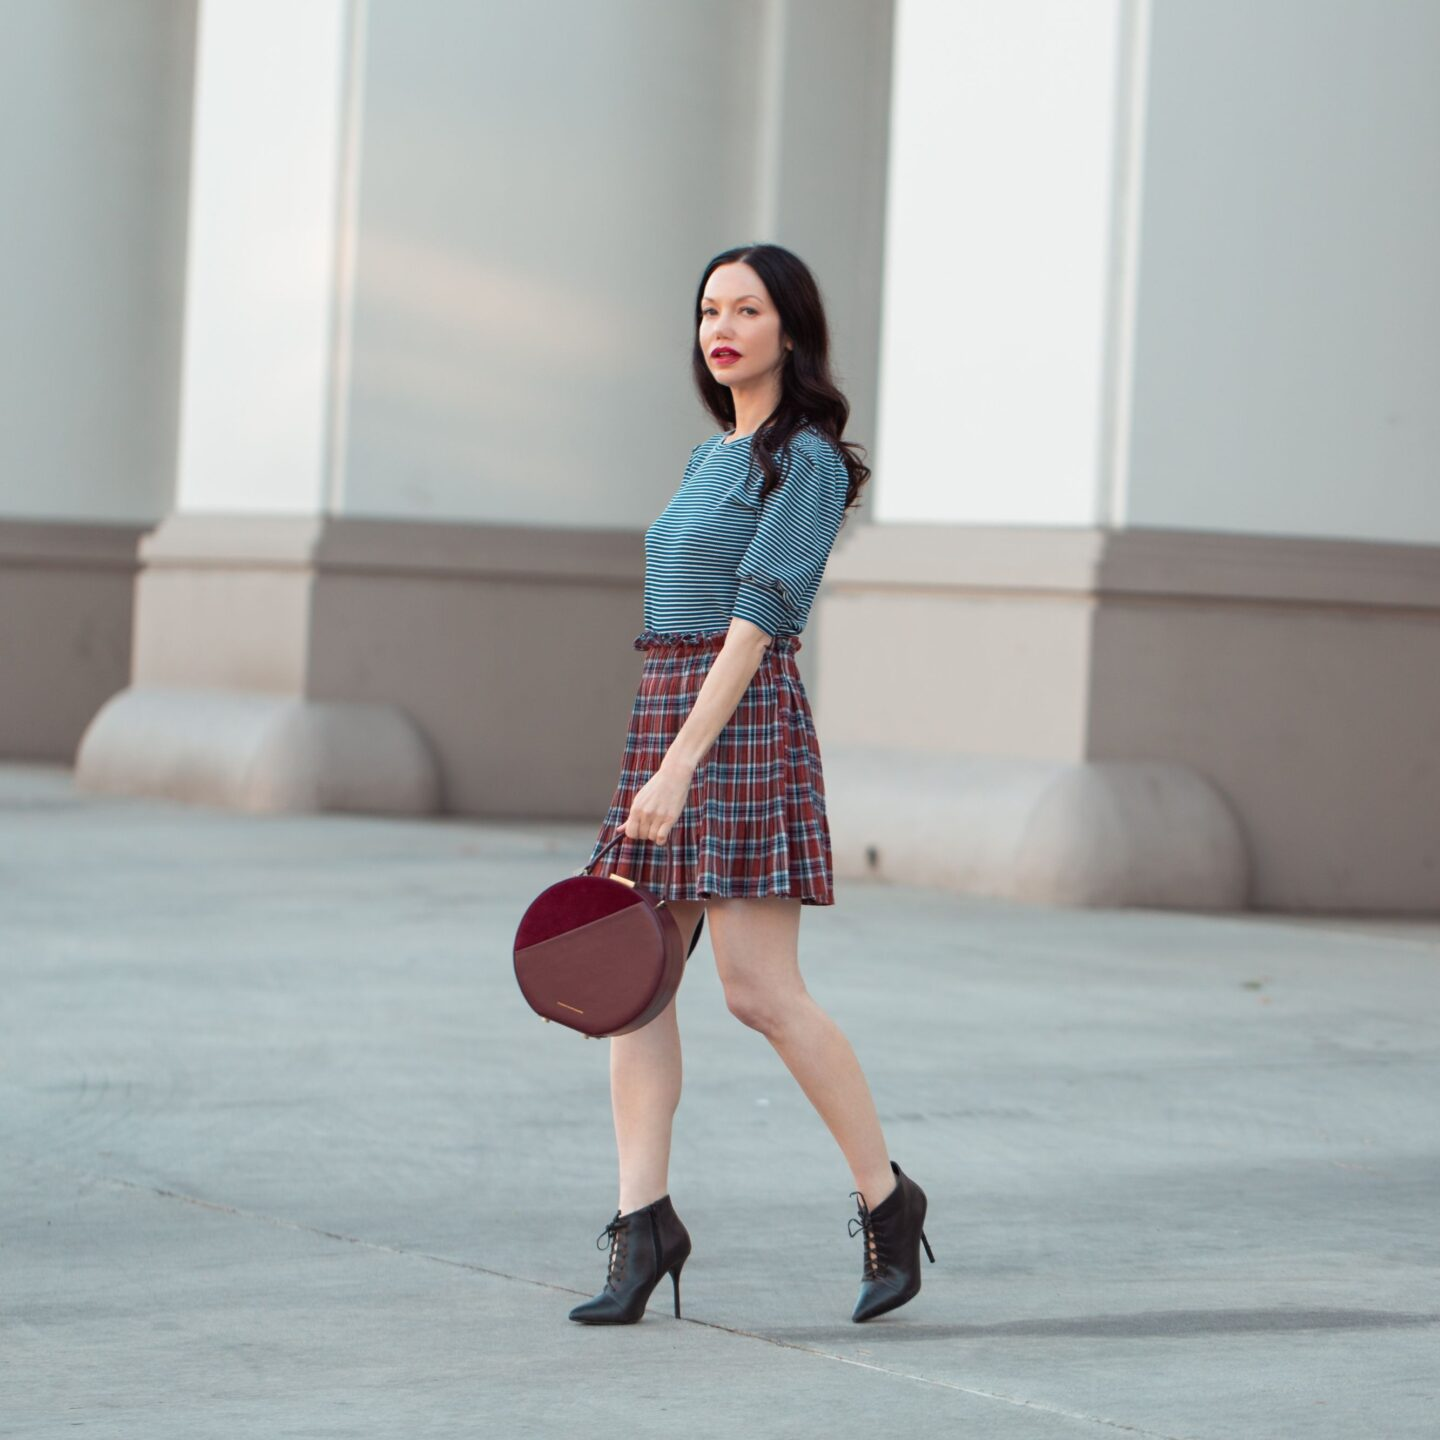 About Lisa Valerie Morgan - Pretty Little Shoppers Blog, Los Angeles Fashion Blogger, Top Fashion and Lifestyle Blogger